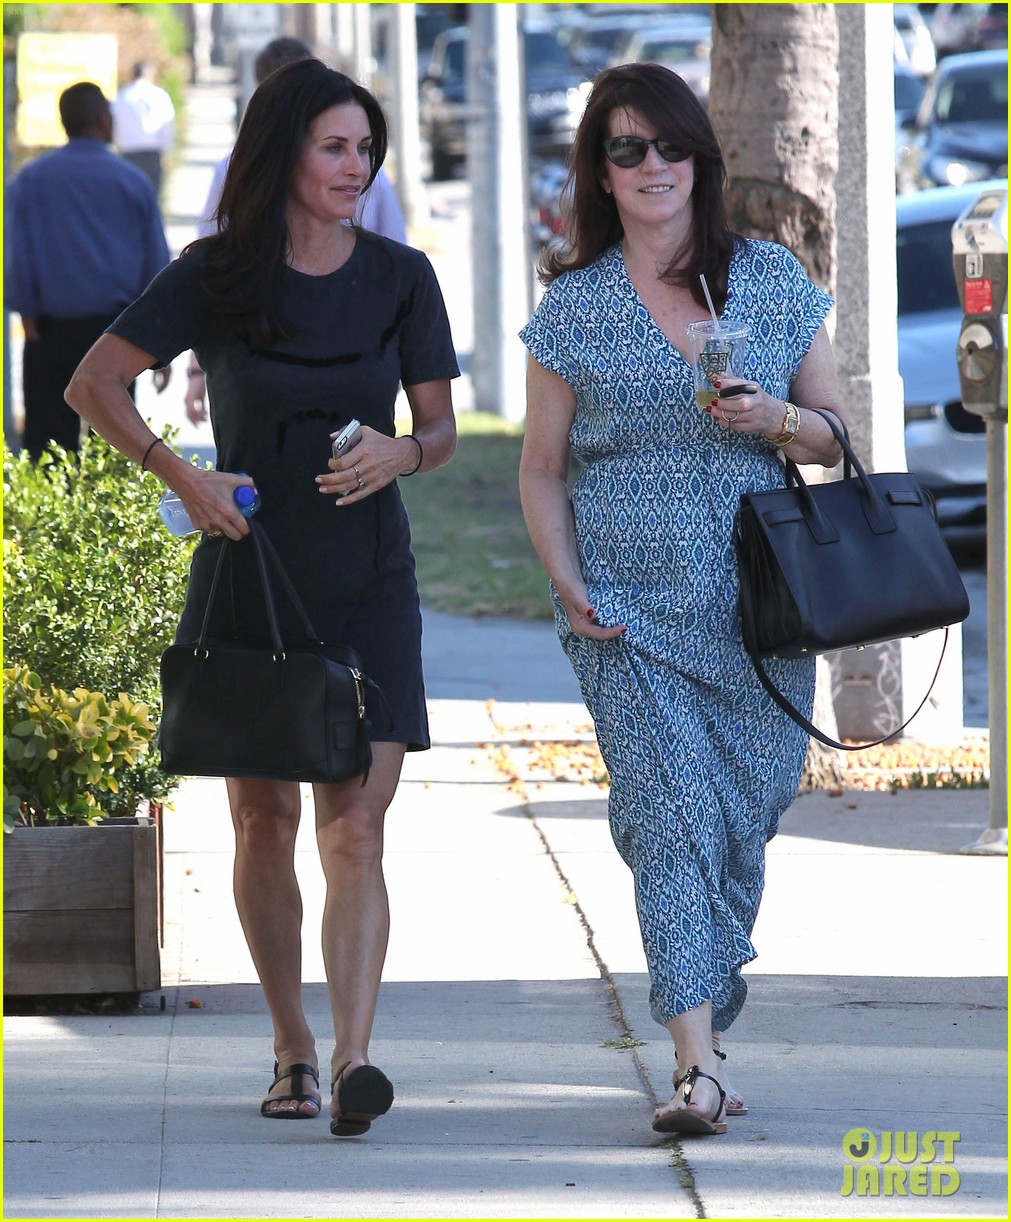 courteney cox steps out after friends ladies reunite 083185799